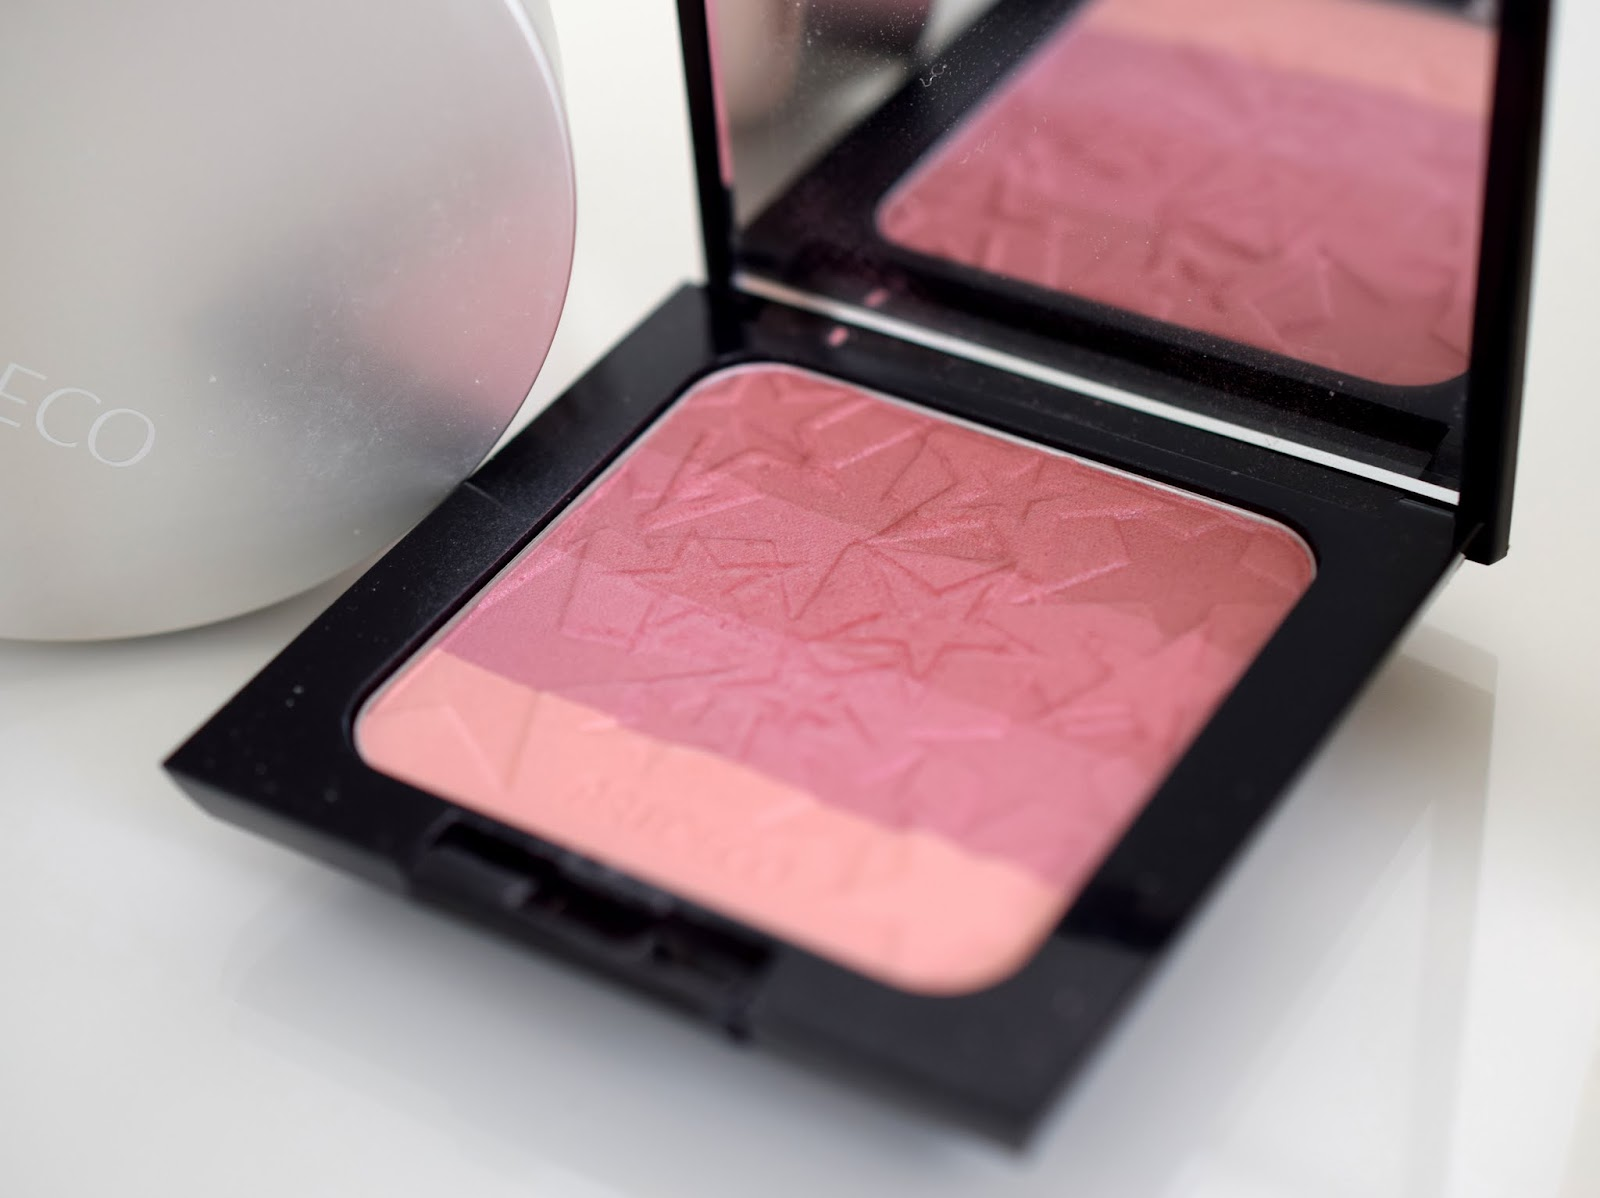 Artdeco Moonlight Blusher aus der Glam, Moon & Stars Kollektion